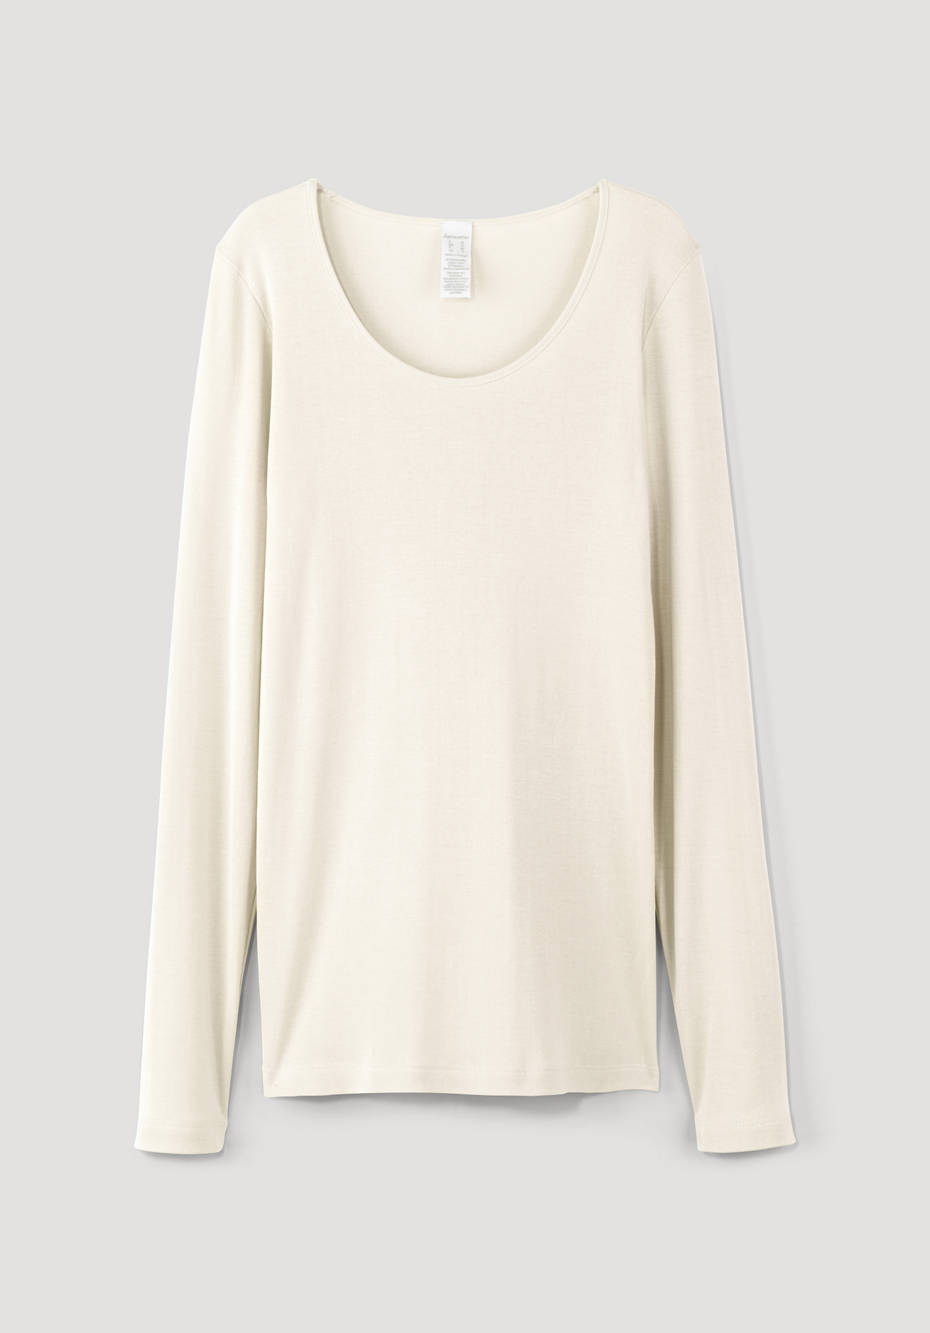 Long-sleeved shirt made of silk with organic cotton